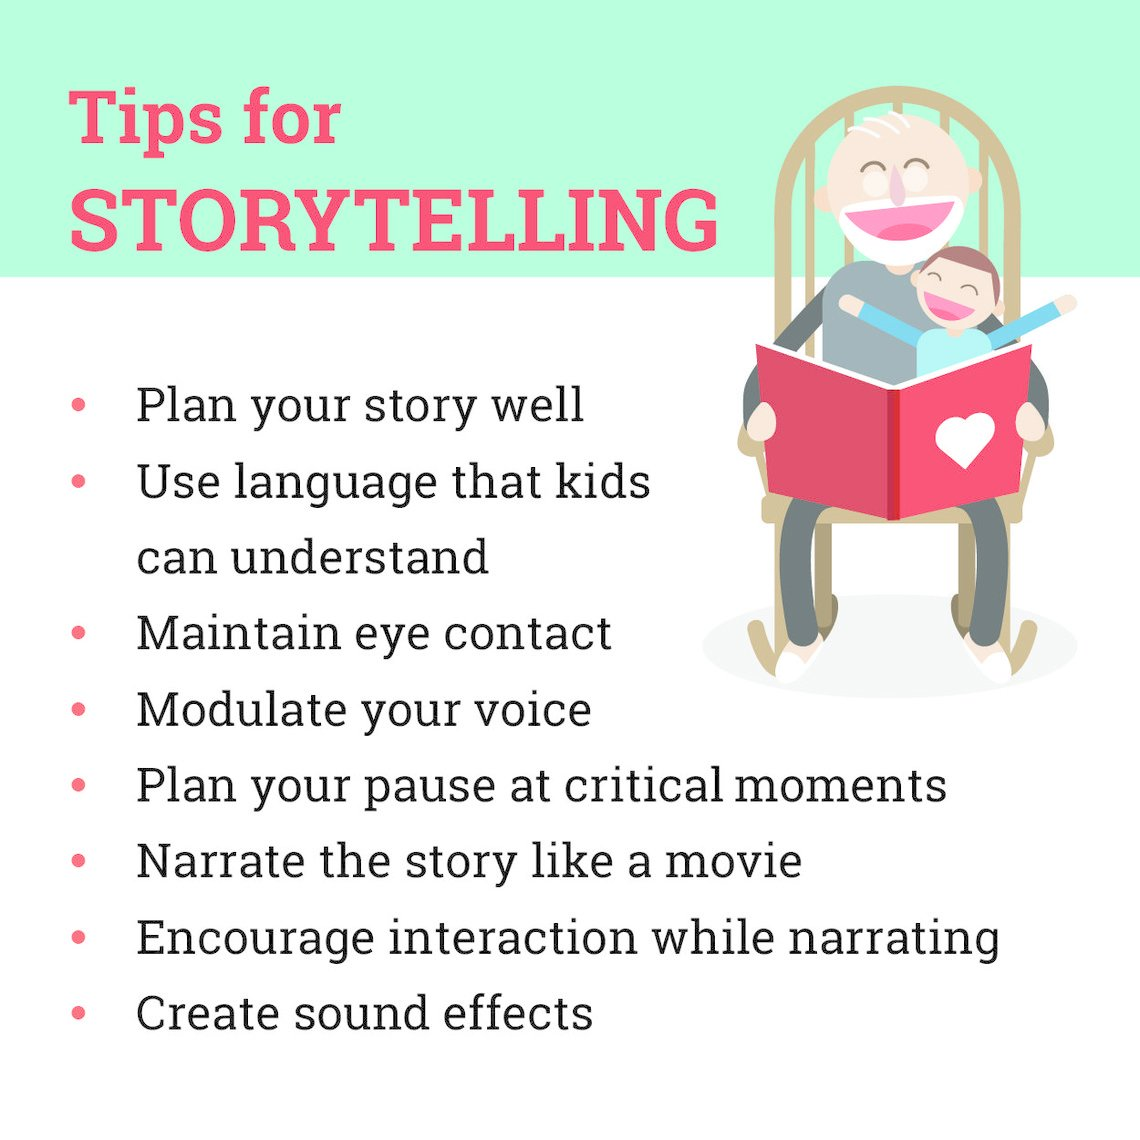 Why is Storytelling Important to Children in This Digital World?